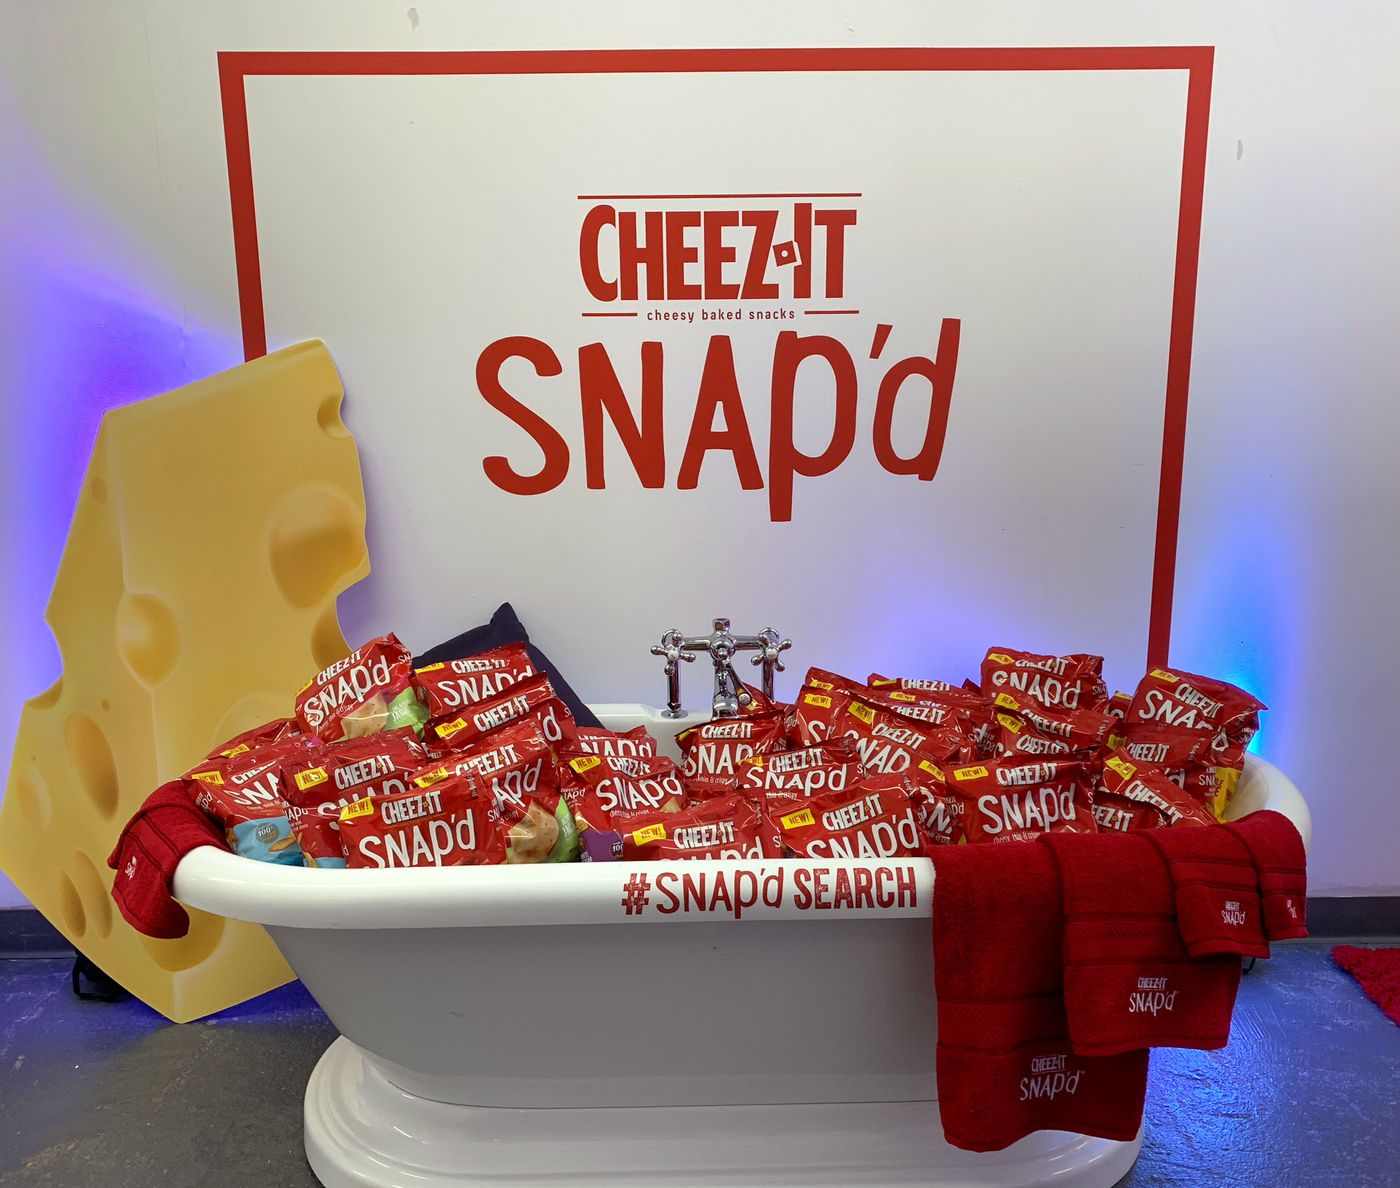 Inside the bunker full of Cheez-Its in New York City - Vox